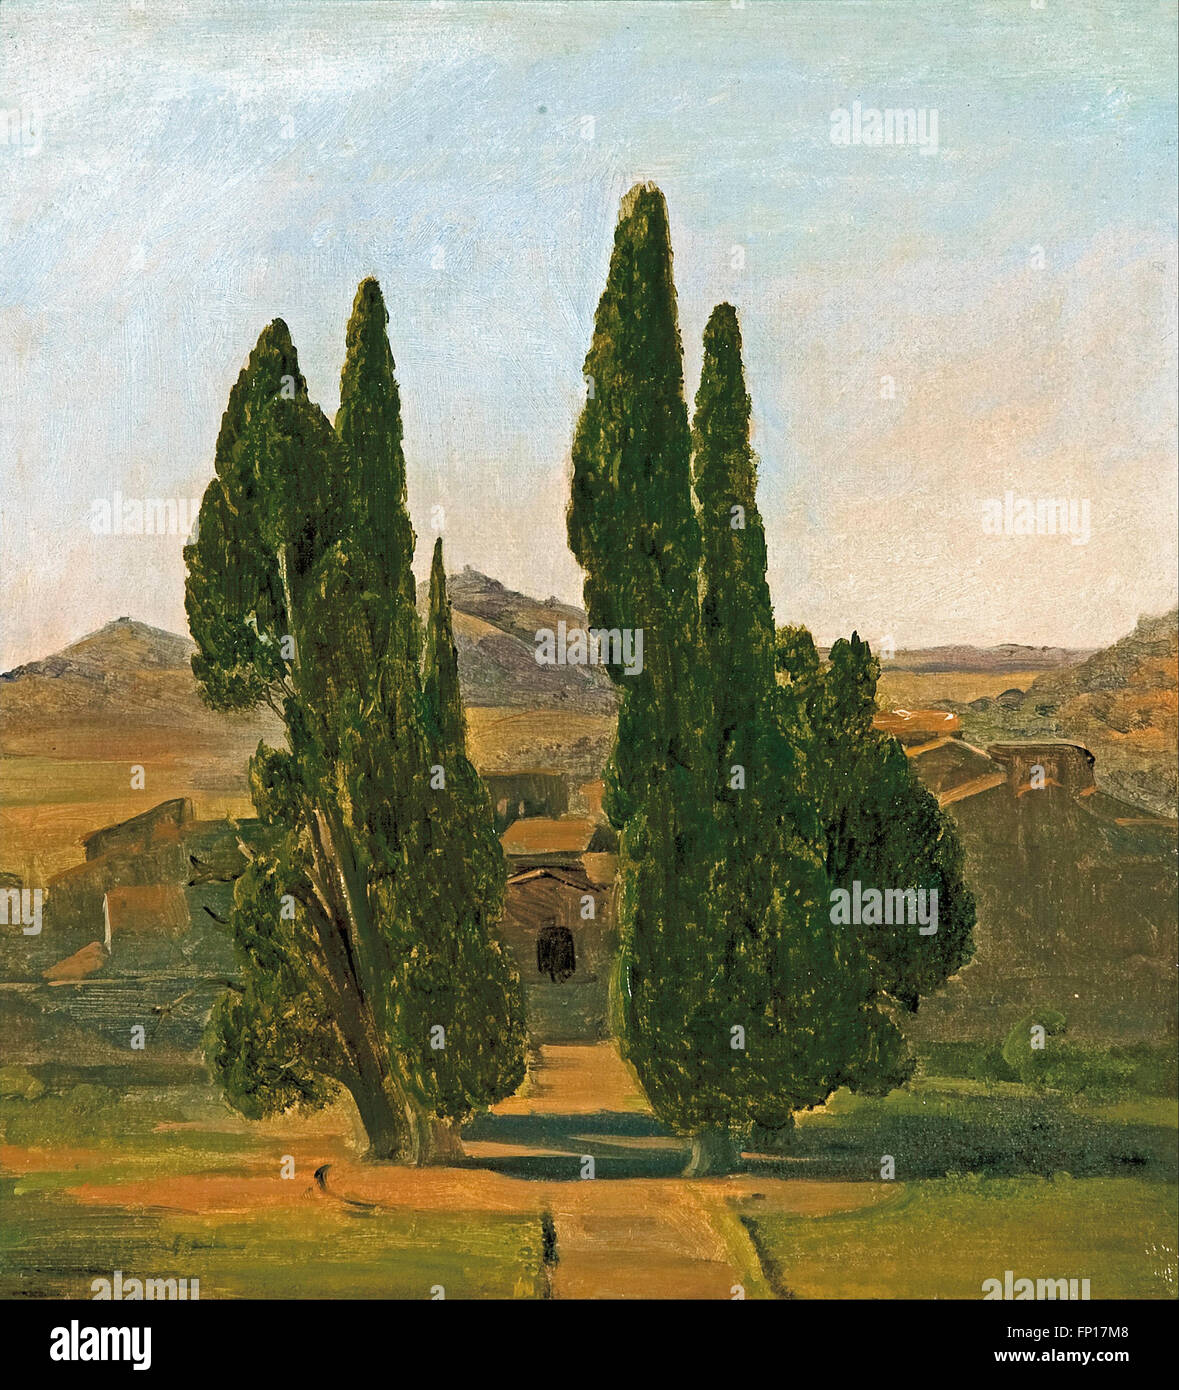 Charles Eastlake - Cypress trees at the Villa d'Este - Stock Image